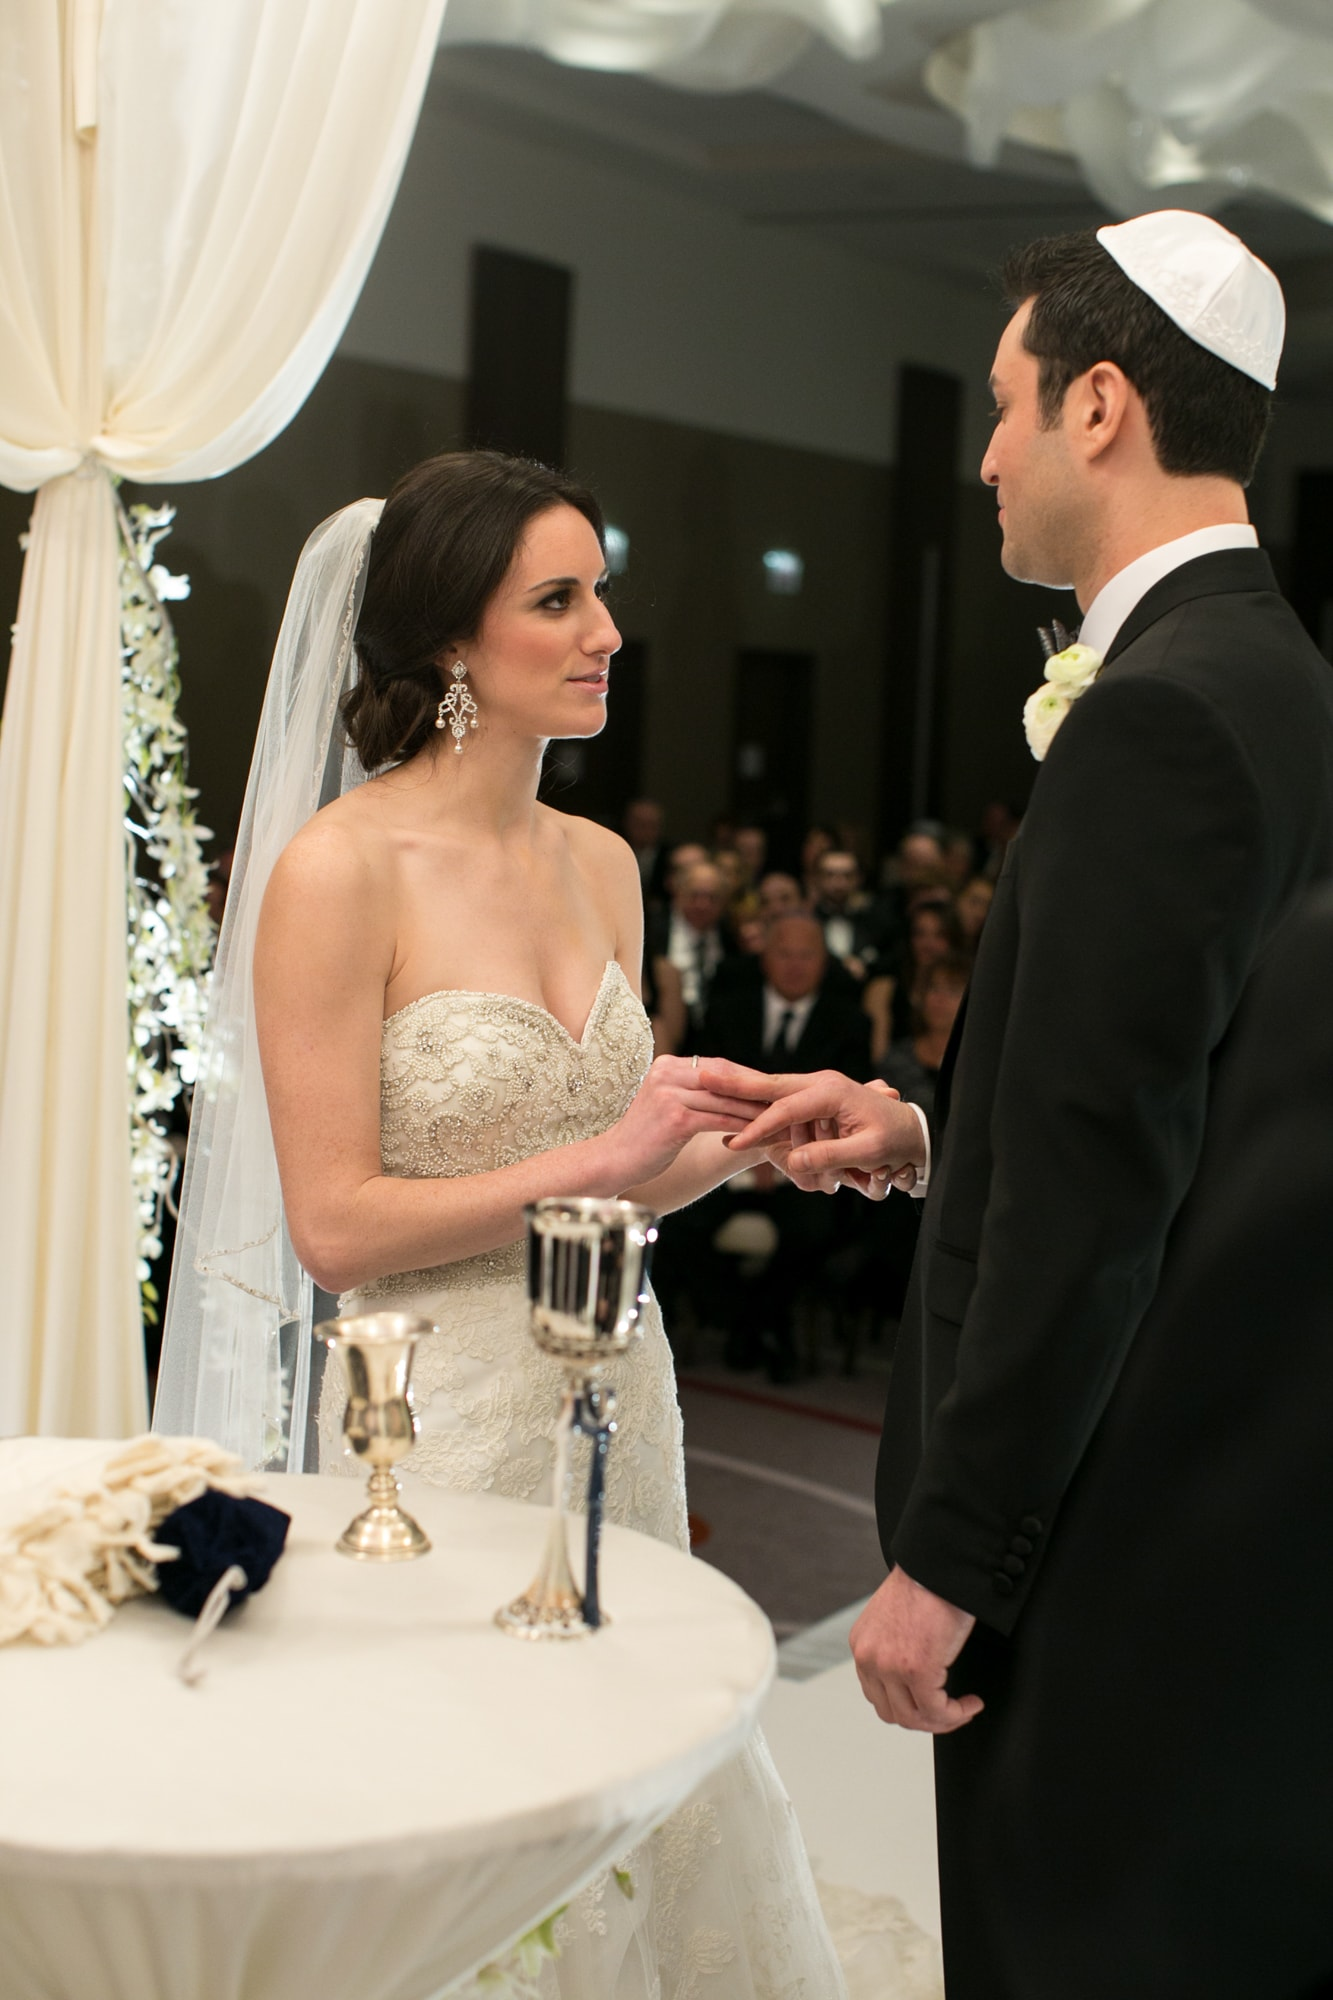 Exchanging rings during a wedding ceremony.